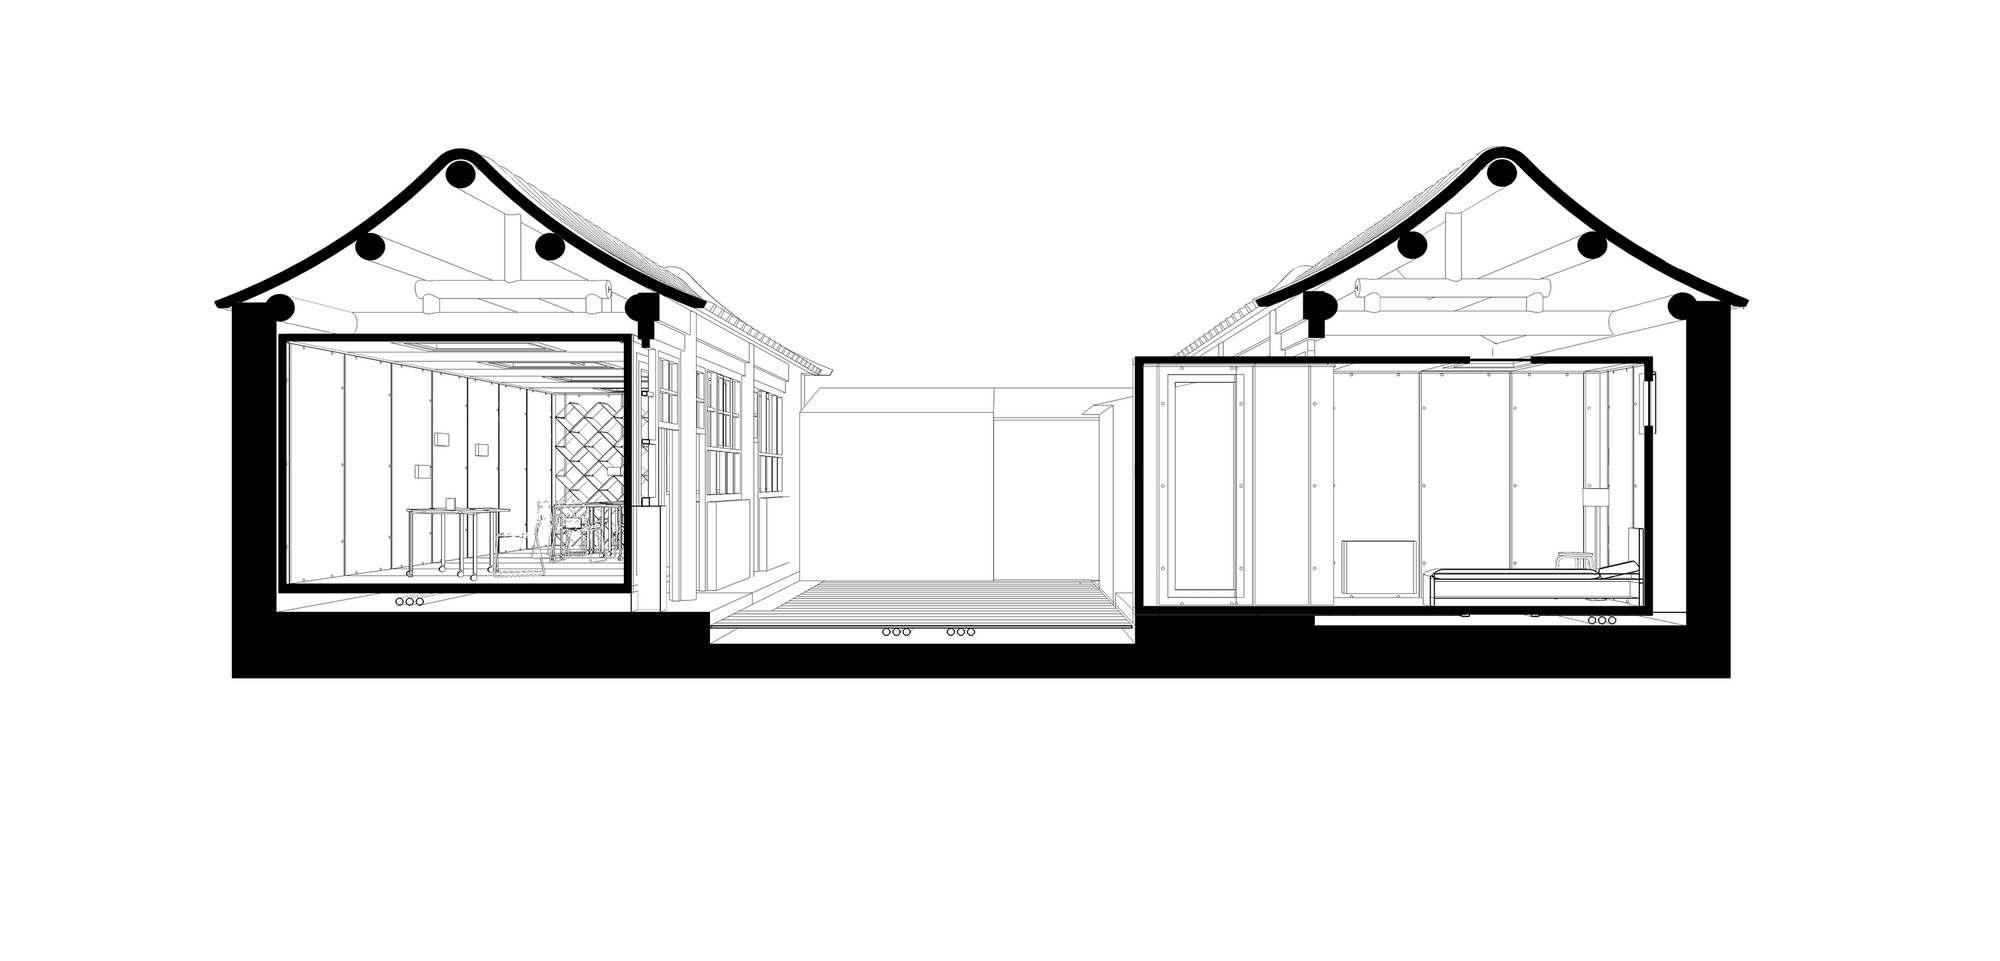 the courtyard house plugin people s architecture office archdaily drawing section